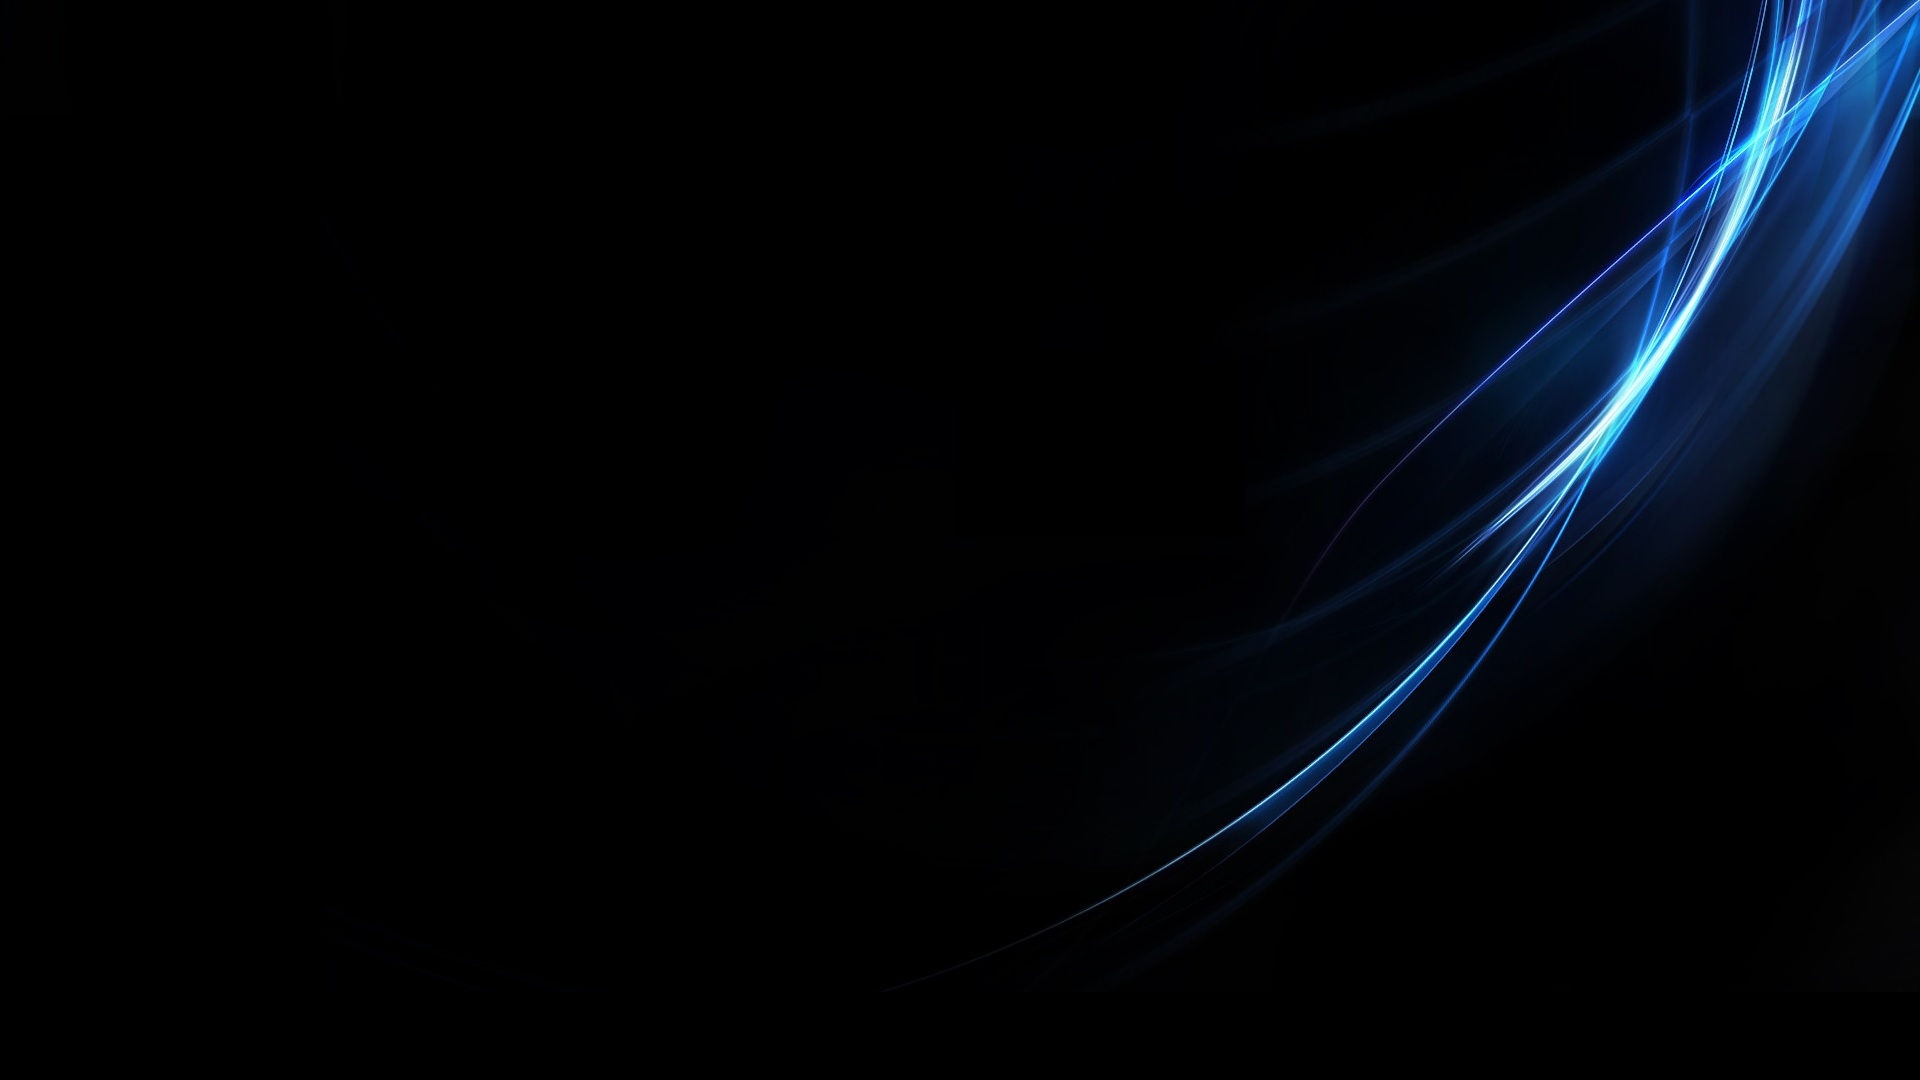 abstract blue black minimalistic wallpaper background 1920x1080